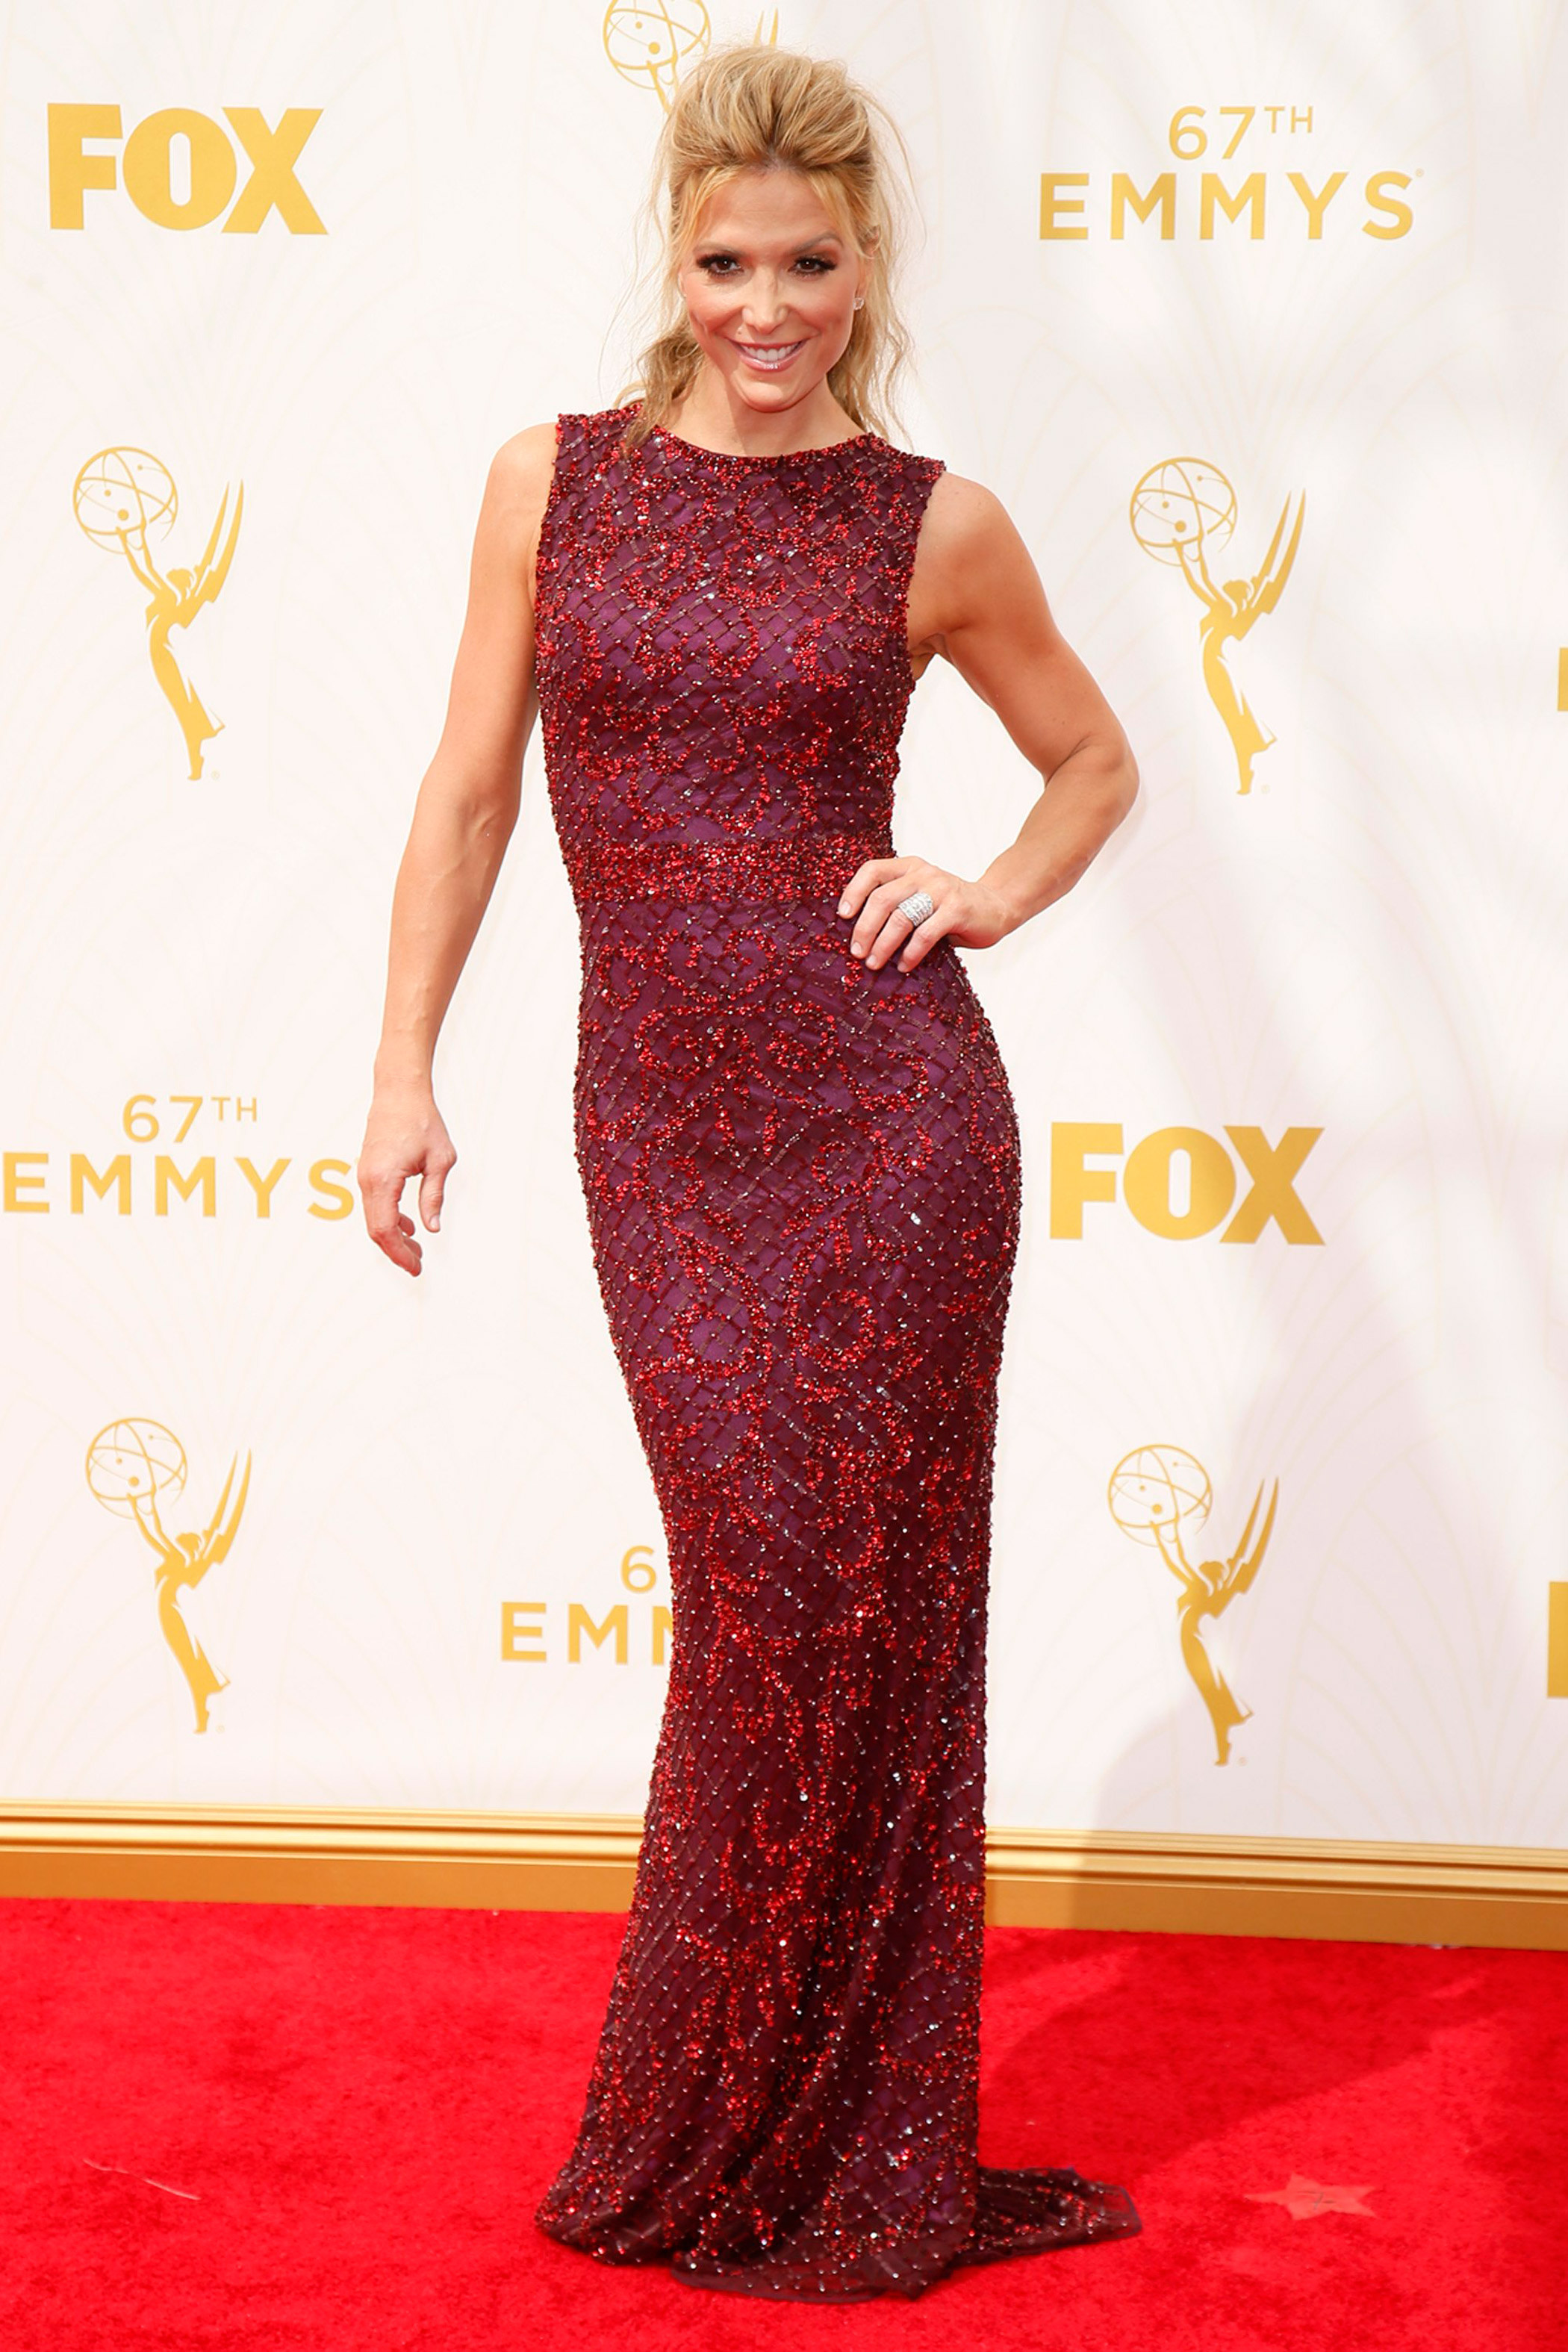 Debbie Matenopoulos at the 67th Emmy Award on Sept. 20, 2015 in Los Angeles.